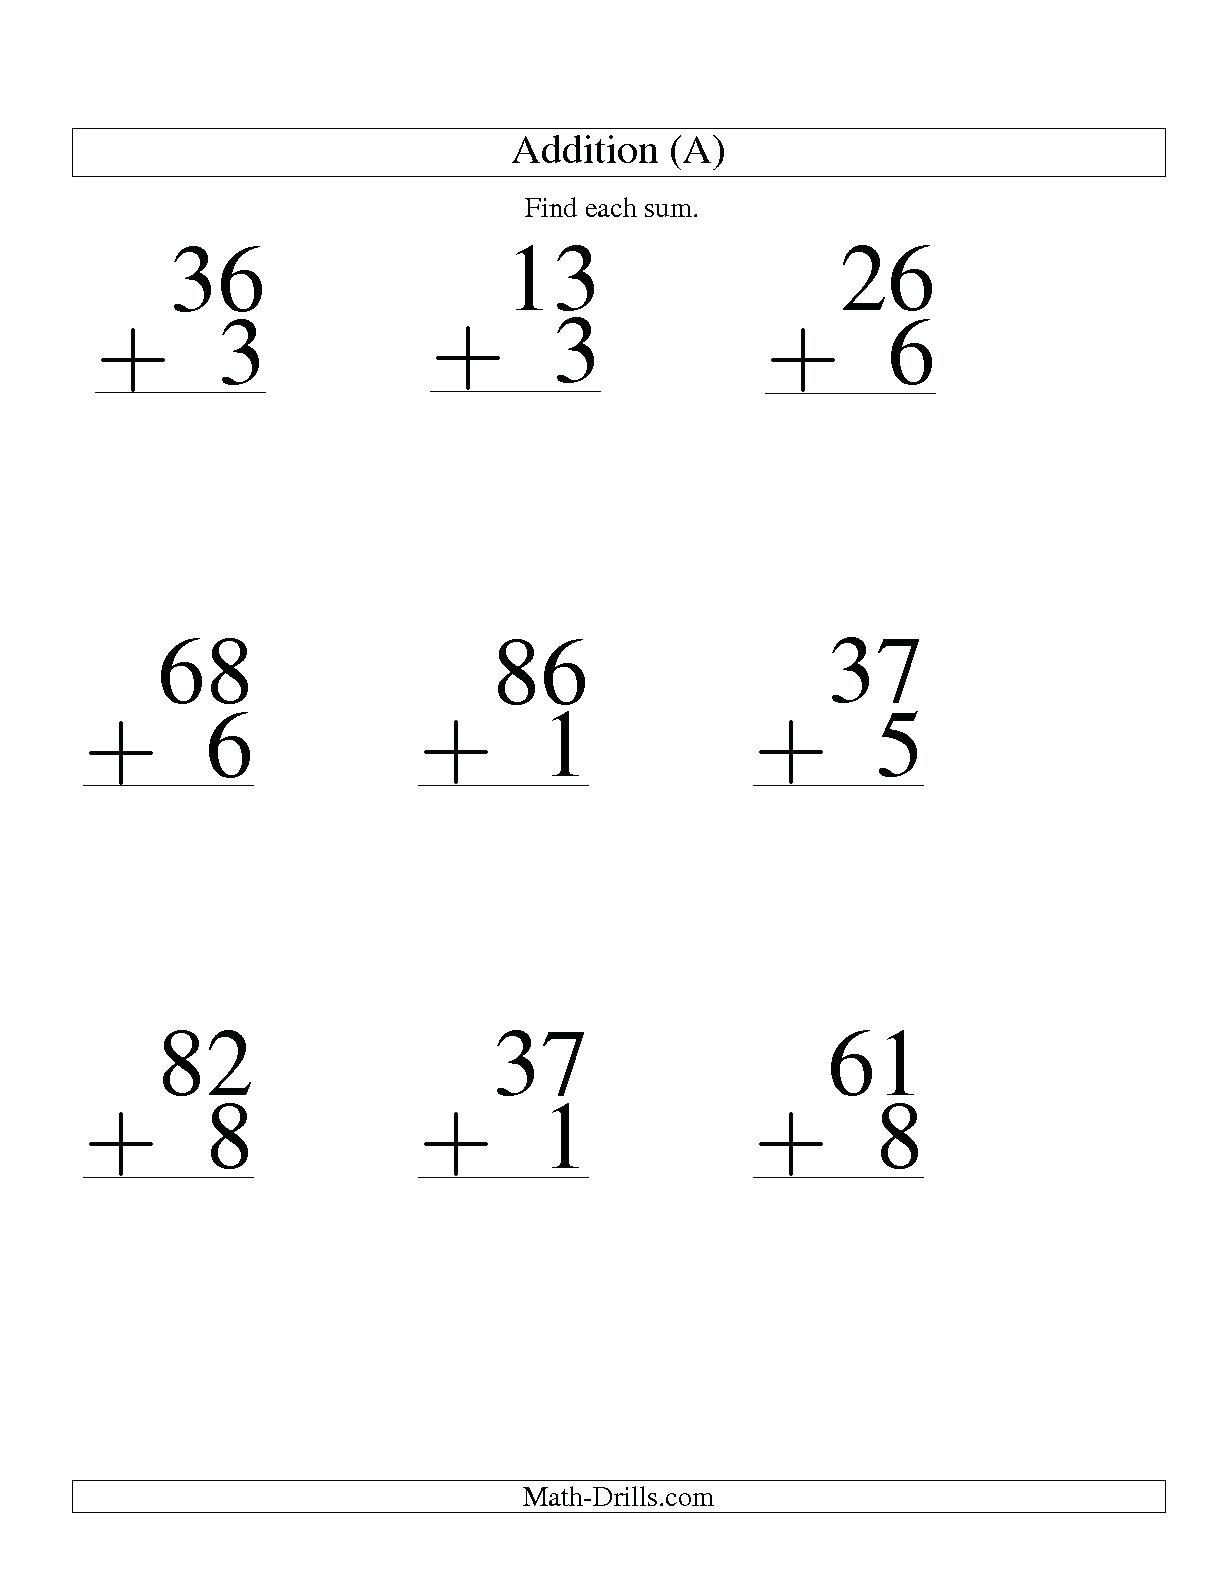 5 Free Math Worksheets First Grade 1 Addition Adding 2